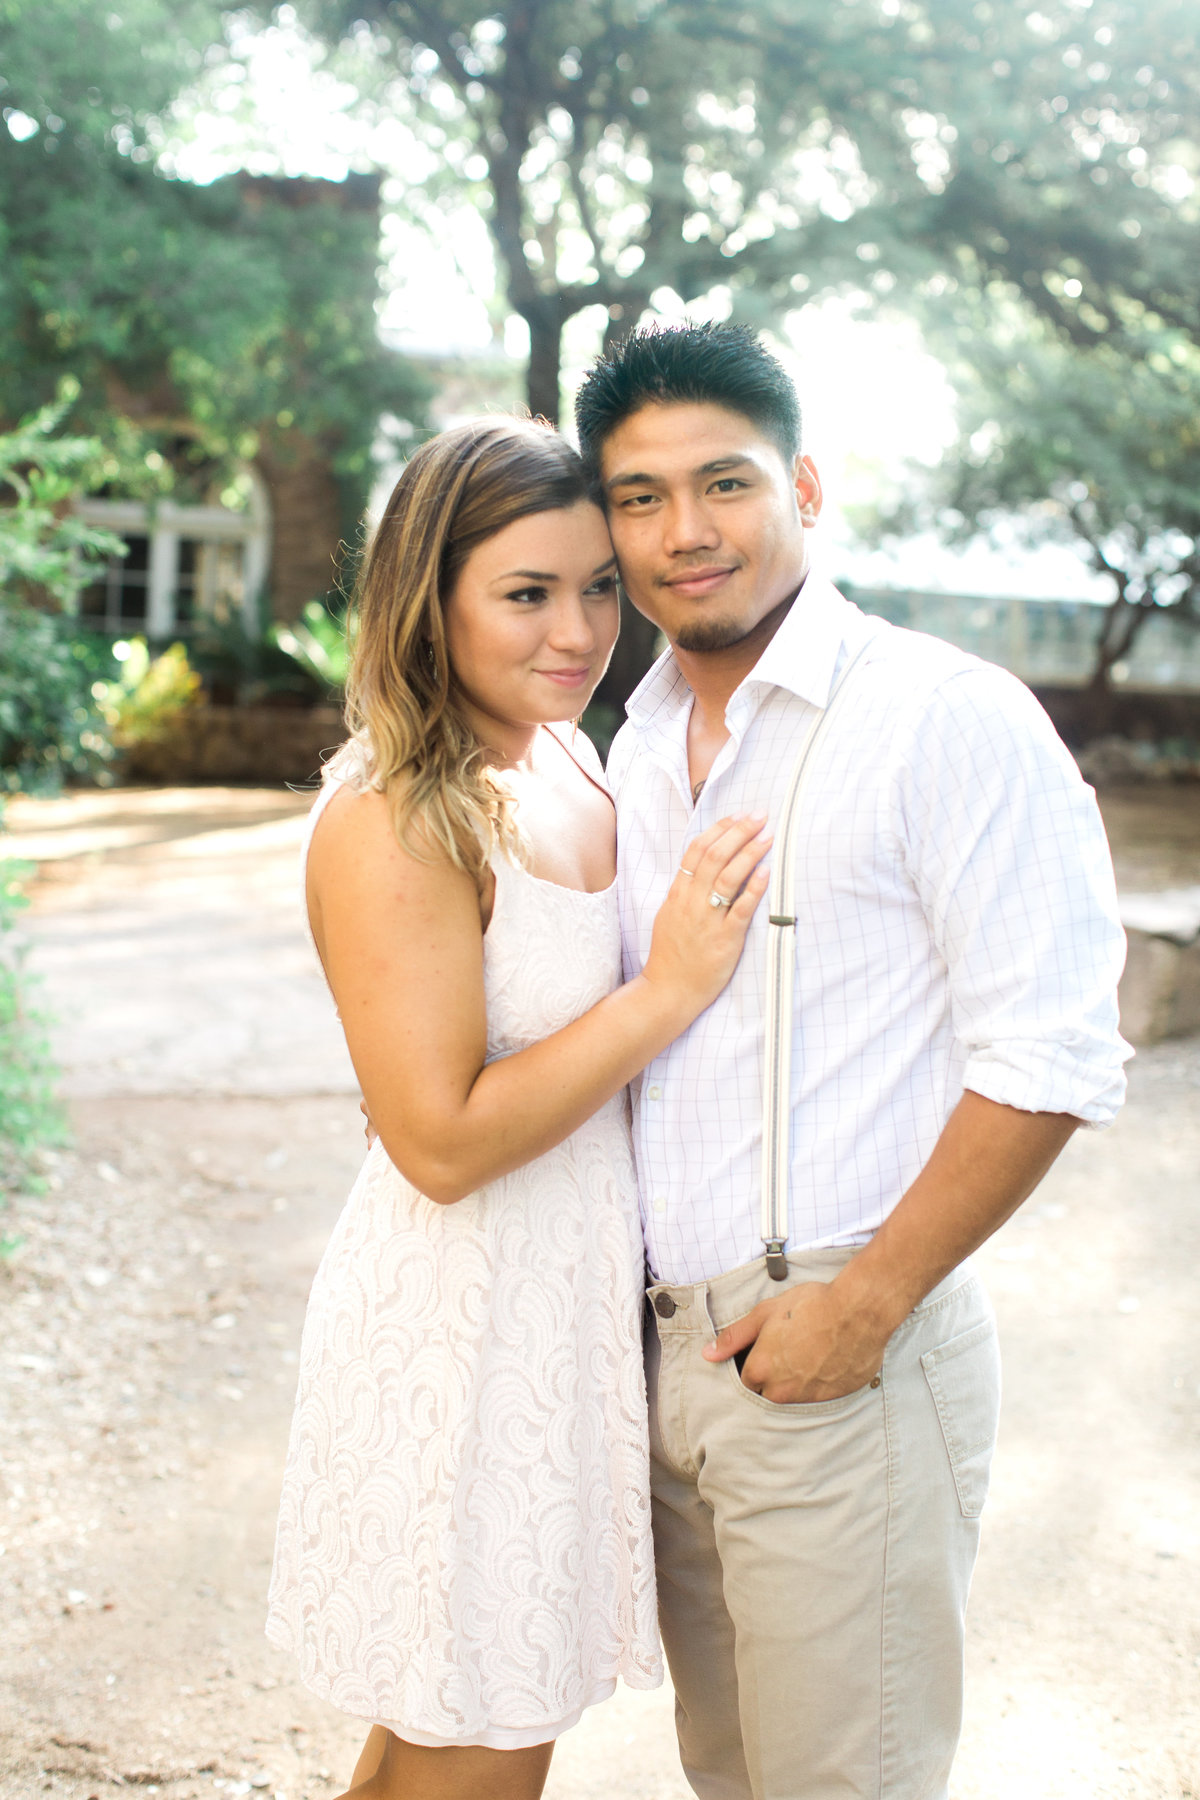 Tasha_David_Boyce_Thompson_Arboretum_Engagement_Session 0354-Edit